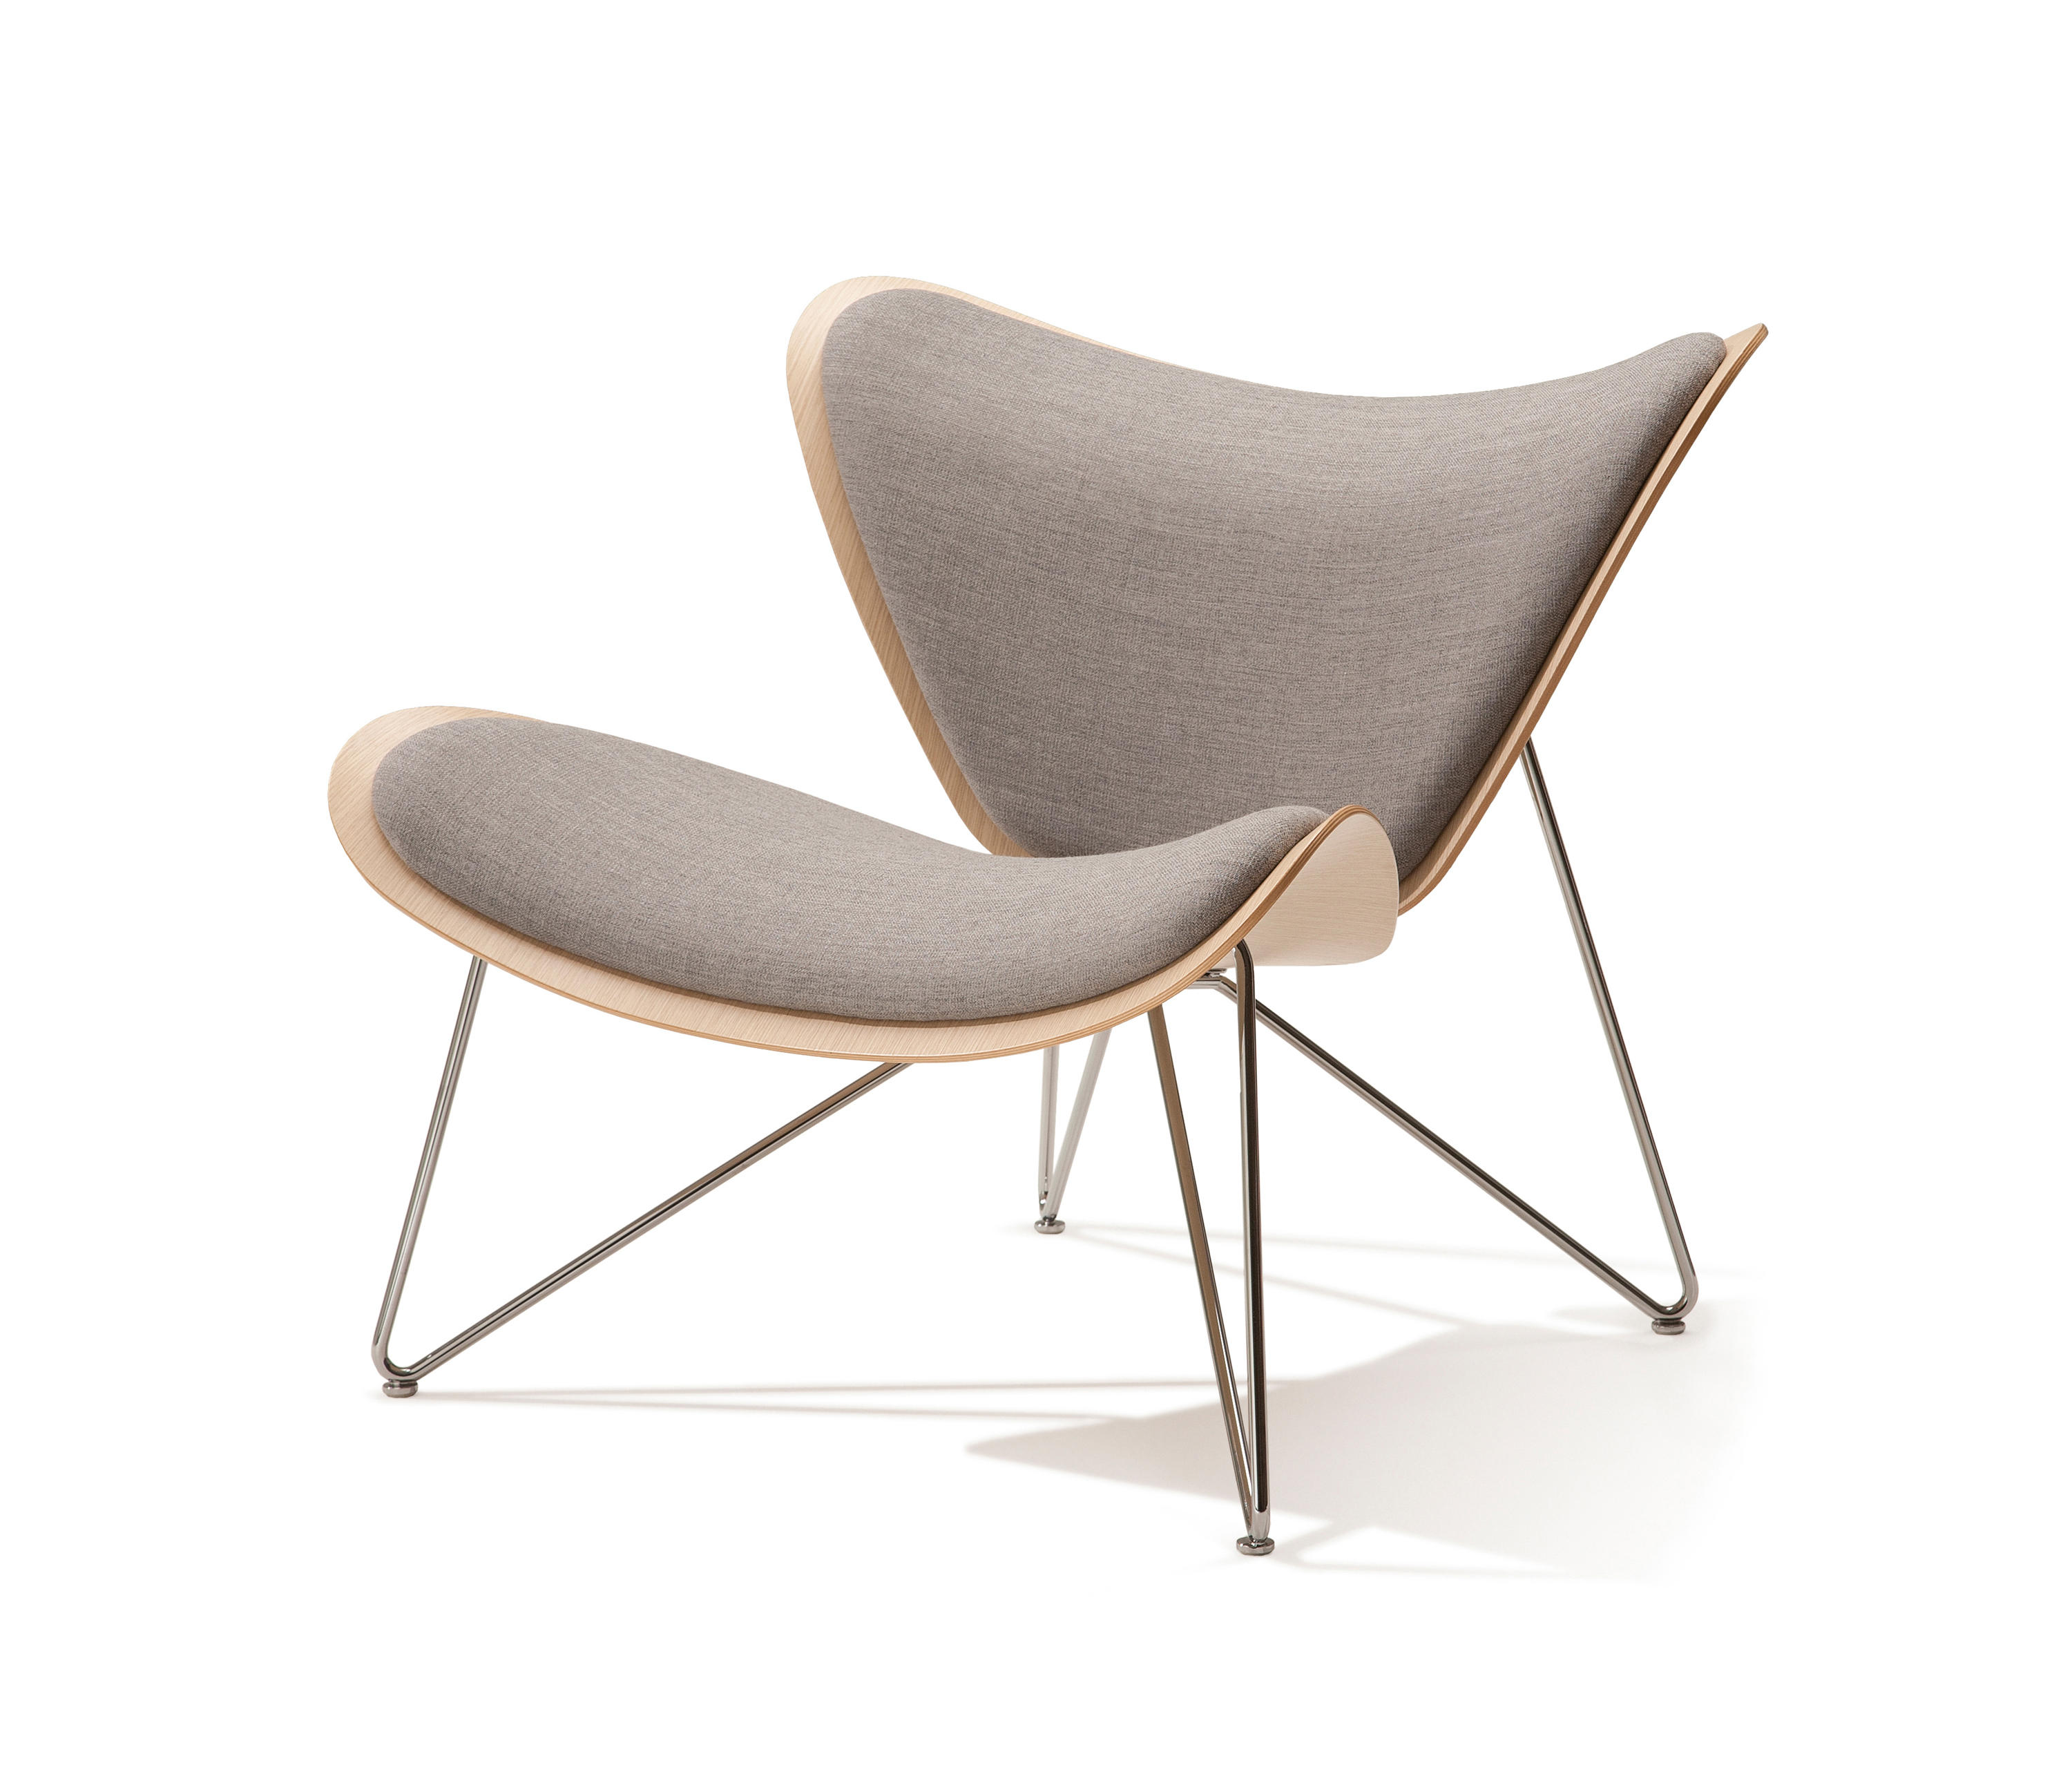 Charmant Copenhagen Chair By Fora Form